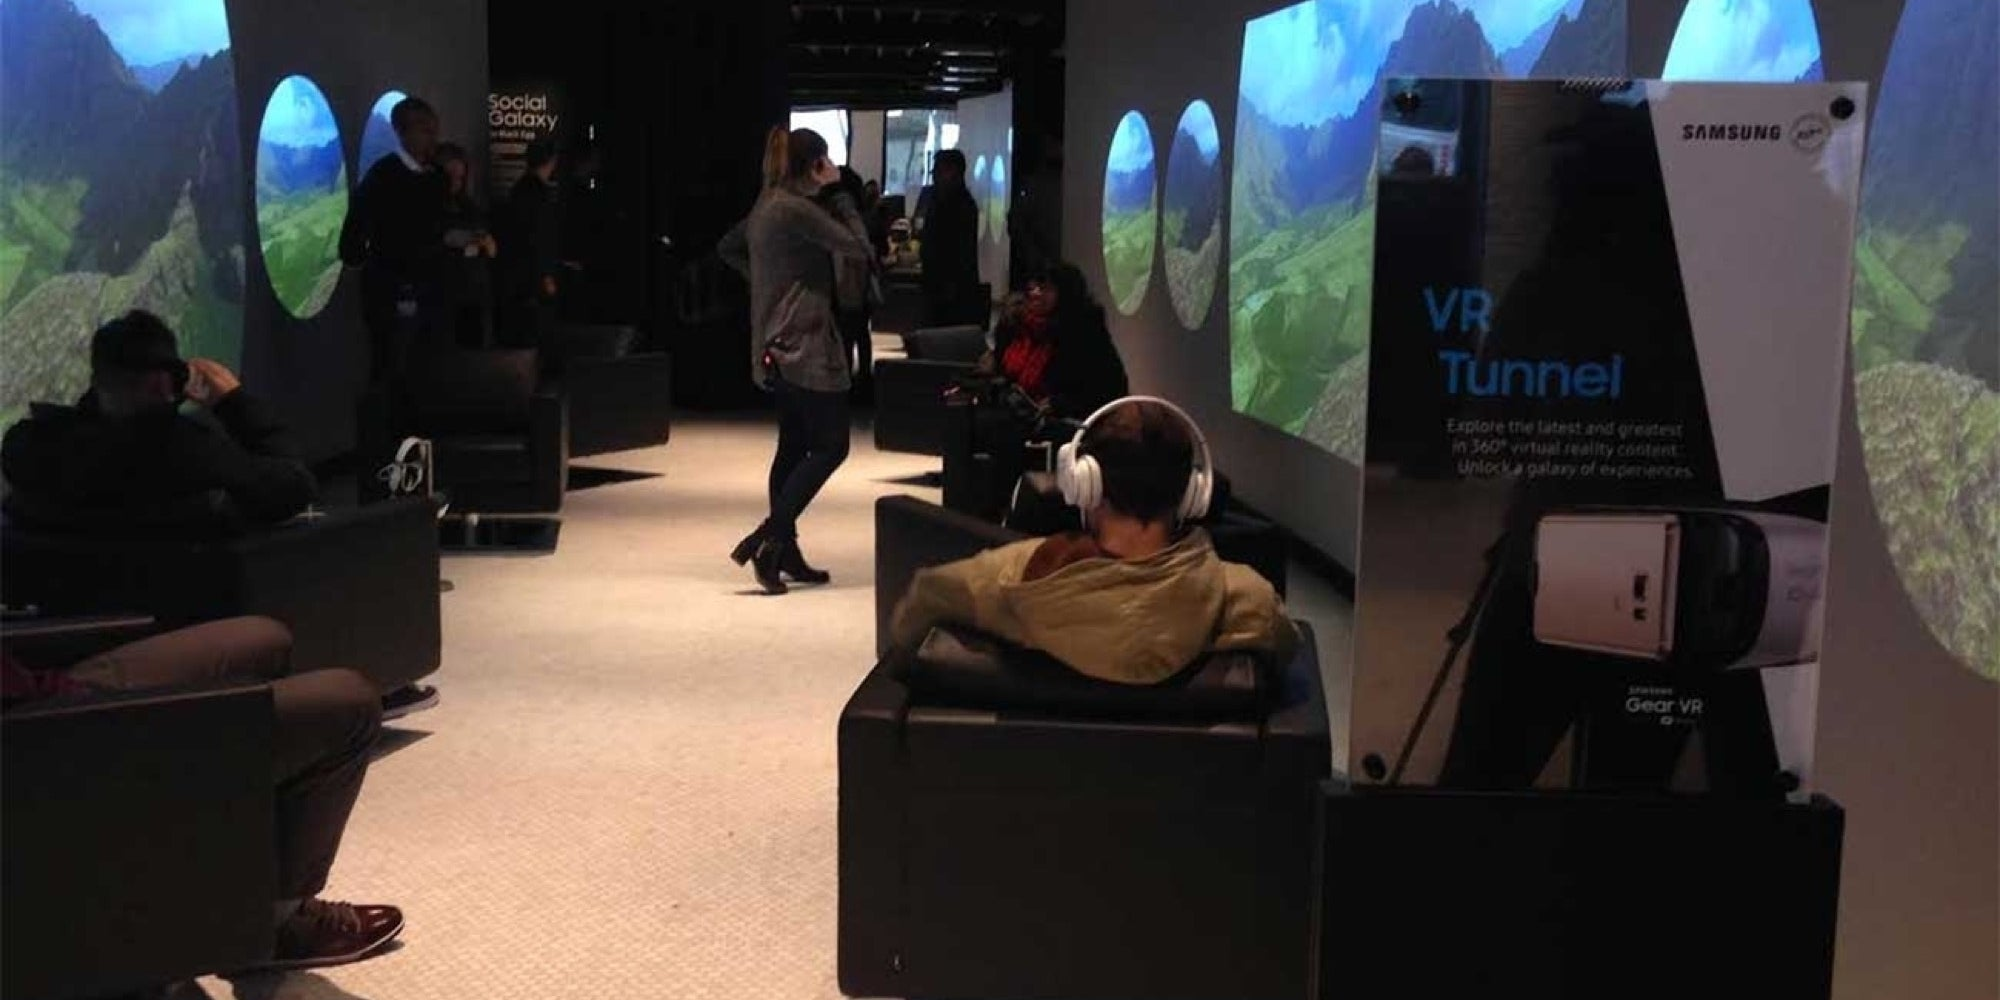 We Took a Tour of Samsung's Cool Tech-Infused Space in NYC